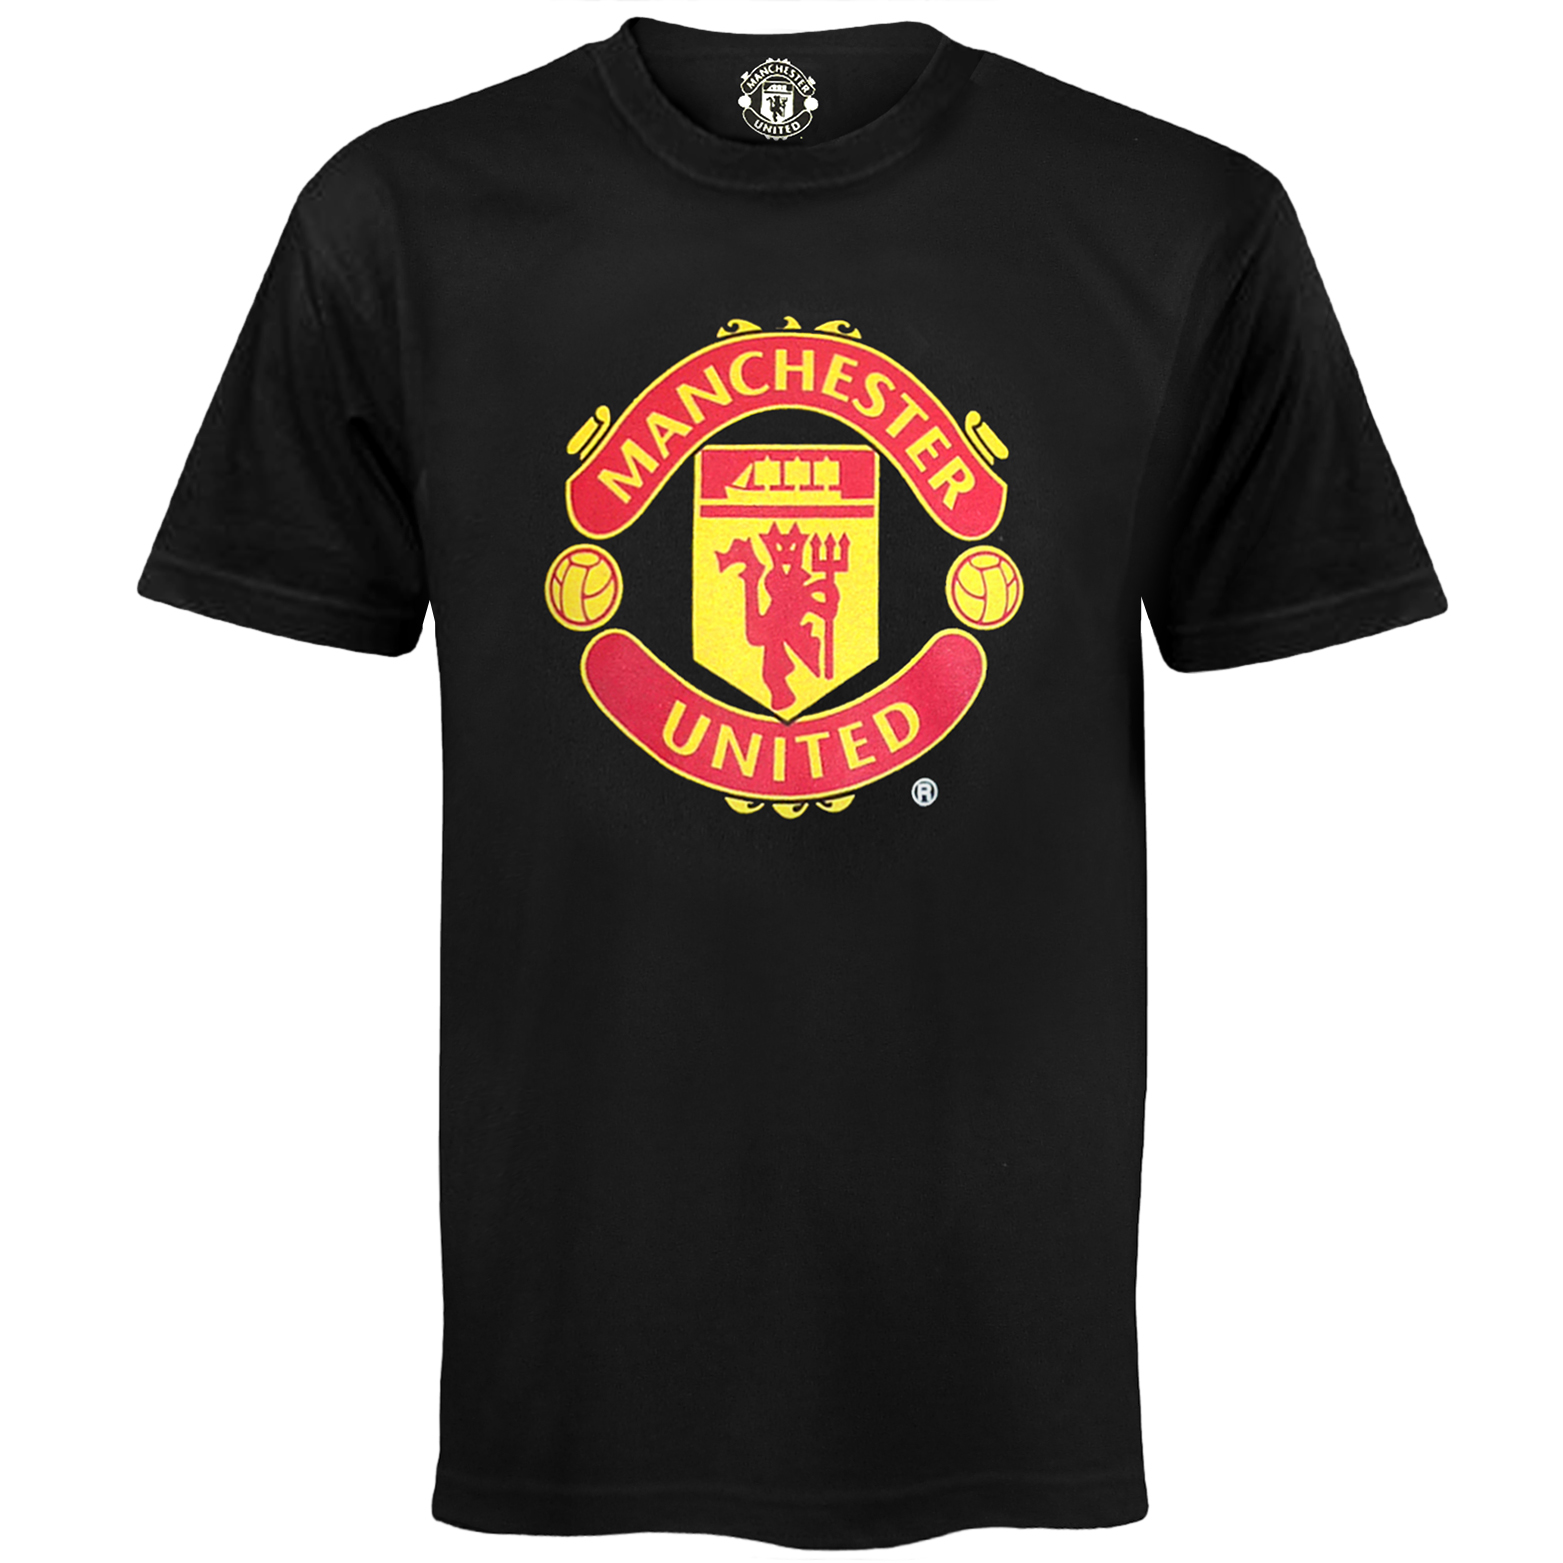 manchester united football club official soccer gift mens. Black Bedroom Furniture Sets. Home Design Ideas